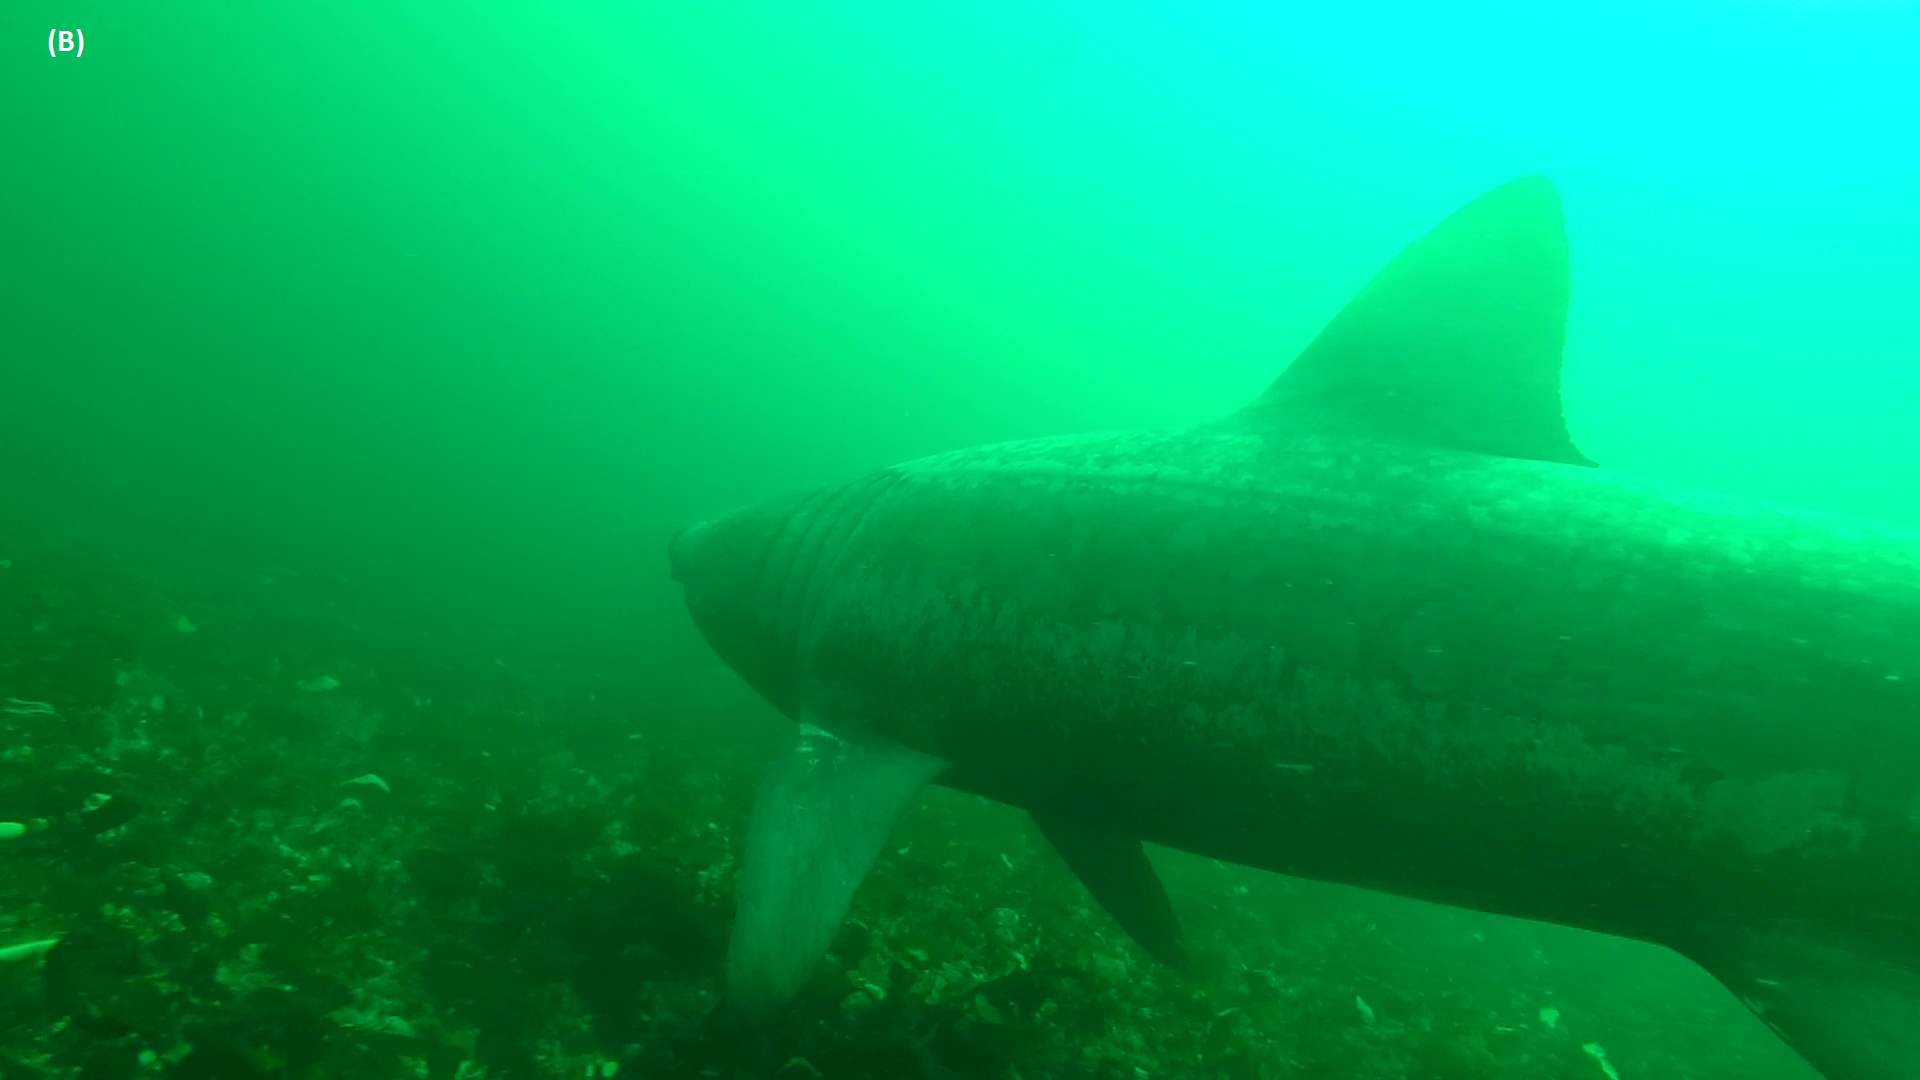 Figure 5: B. Forward view from AUV of shark swimming close to seabed with mouth closed. © Amy Kukulya, Oceanographic Systems Lab, WHOI.